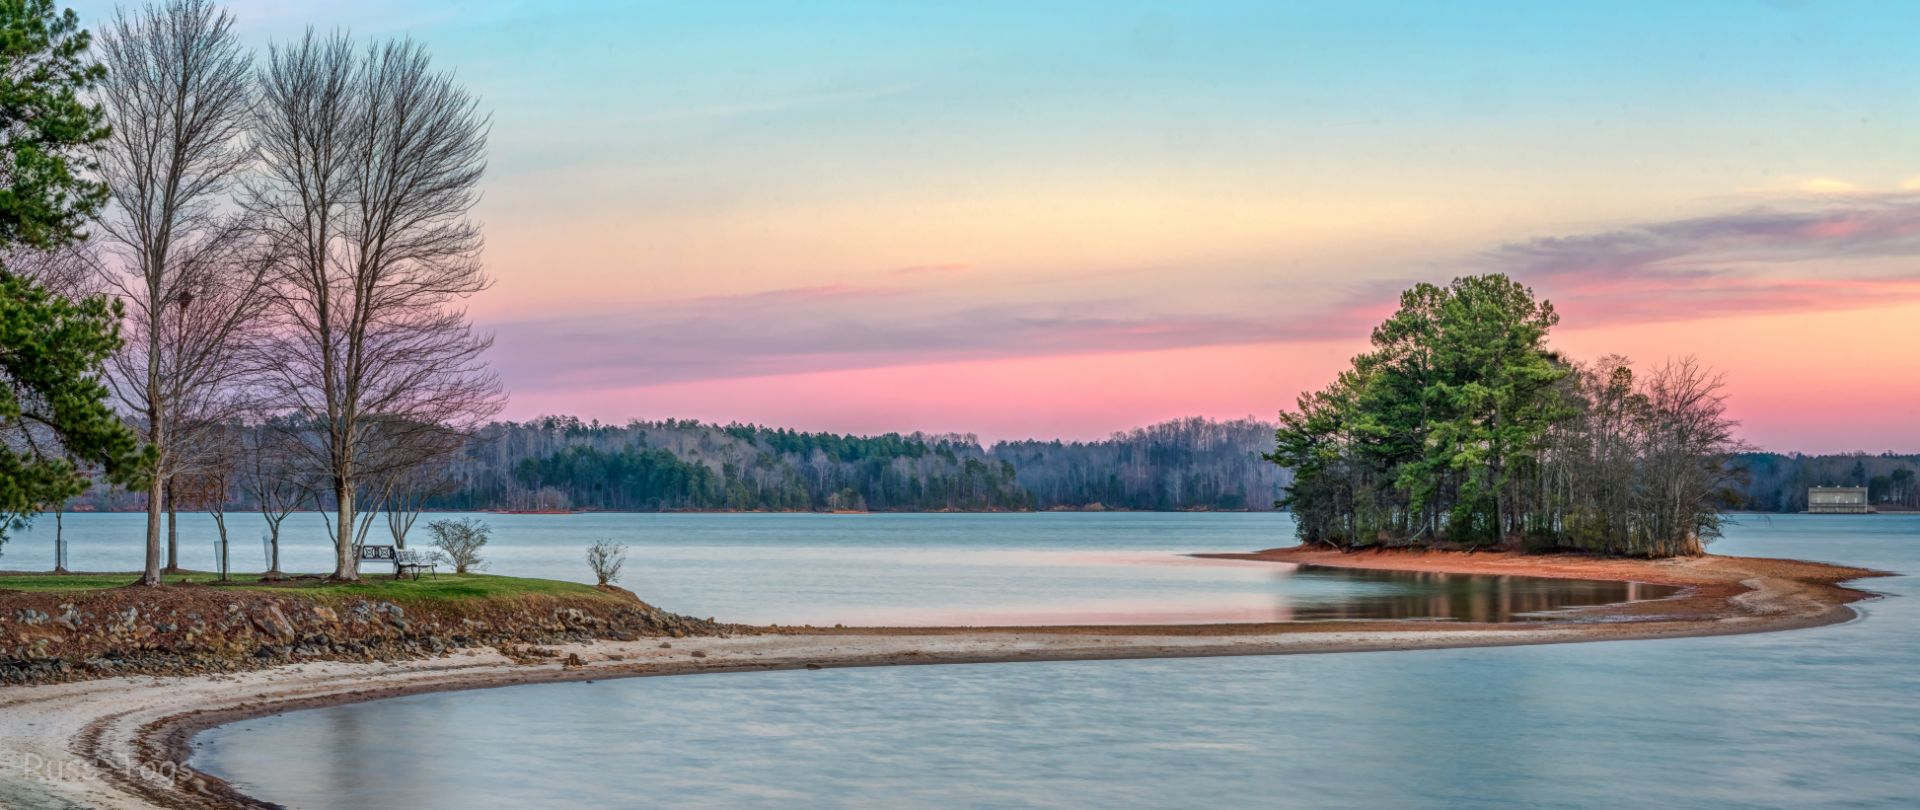 keowee key hero image